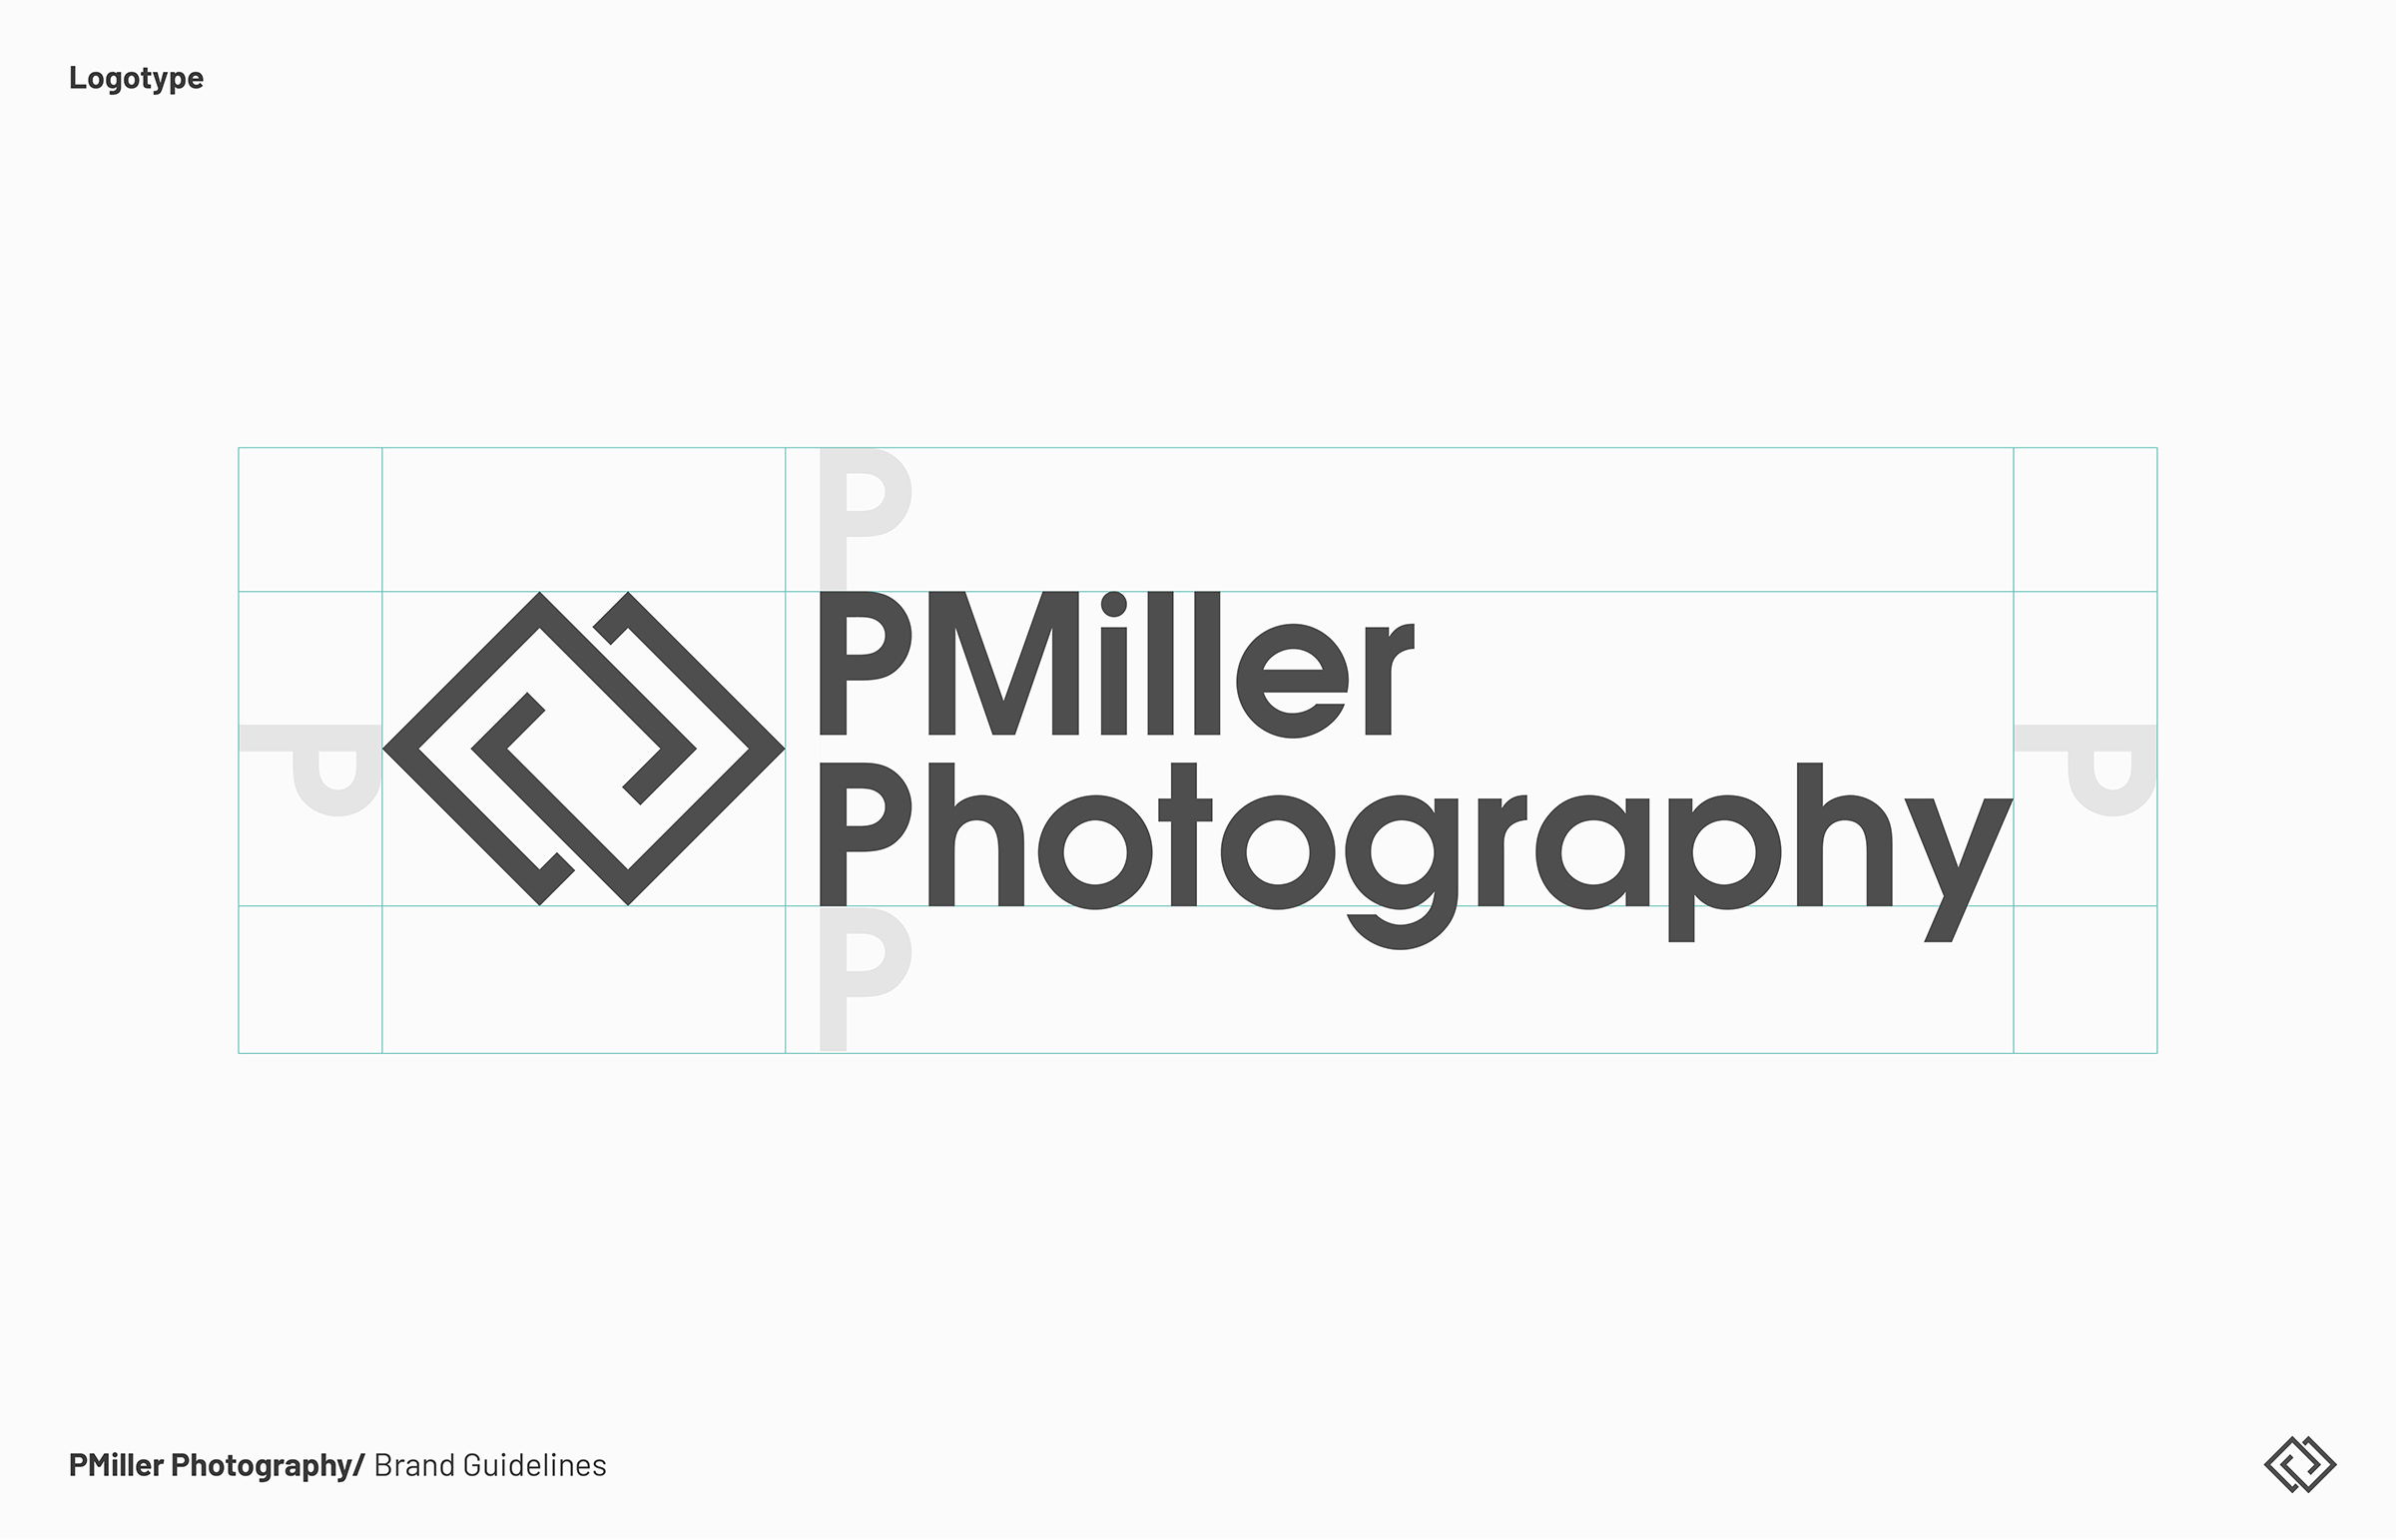 PMiller-Logo-Full-Clearspace-Playground@2x